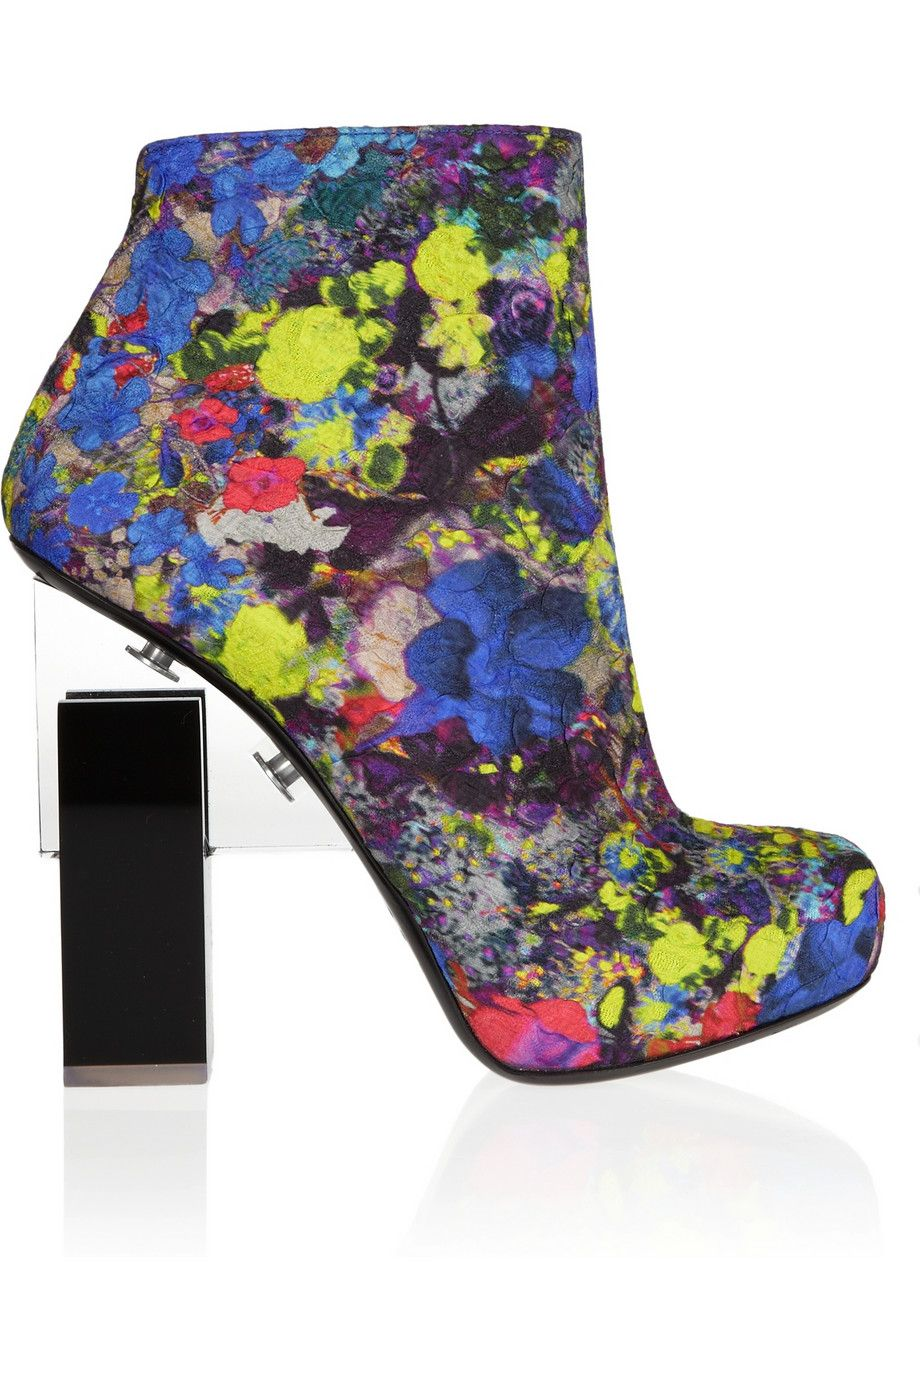 Nicholas Kirkwood x Erdem Leather Ankle Boots clearance geniue stockist from china cheap discount discount low price clearance online ebay nB8aKa